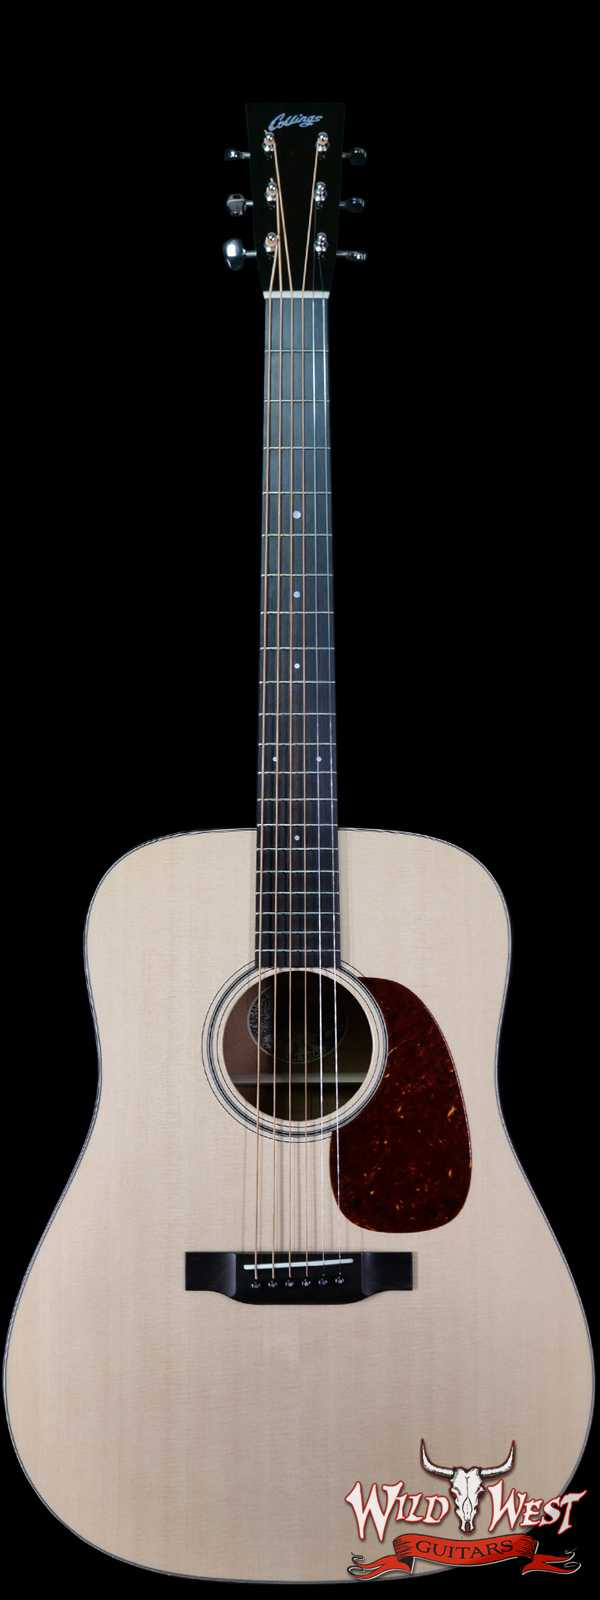 Collings D Serise Dreadnought D1 Sitka Spruce Top Honduran Mahogany Back & Sides